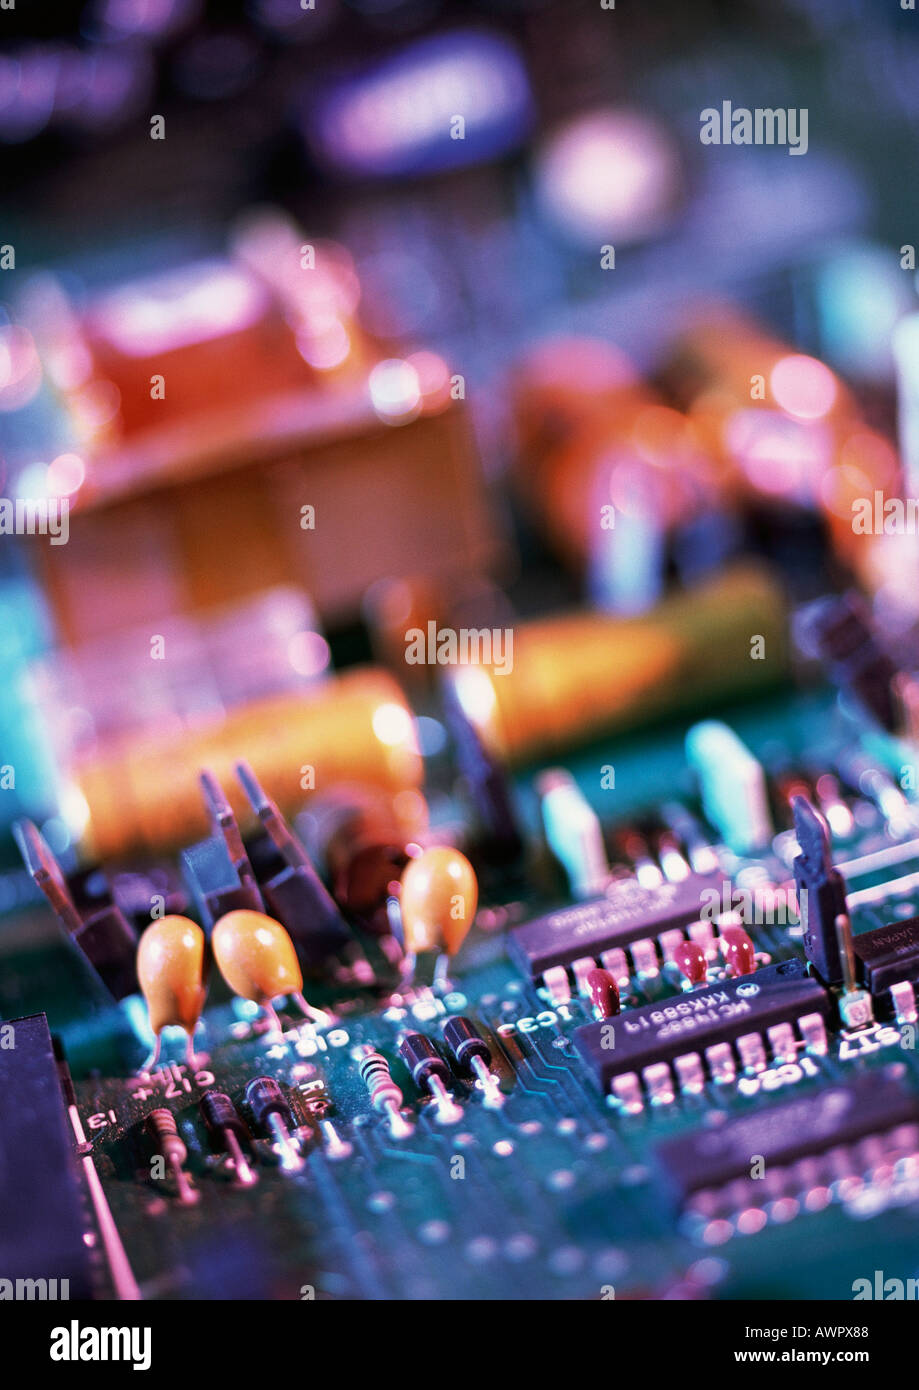 Circuit board, blurred, close-up Stock Photo